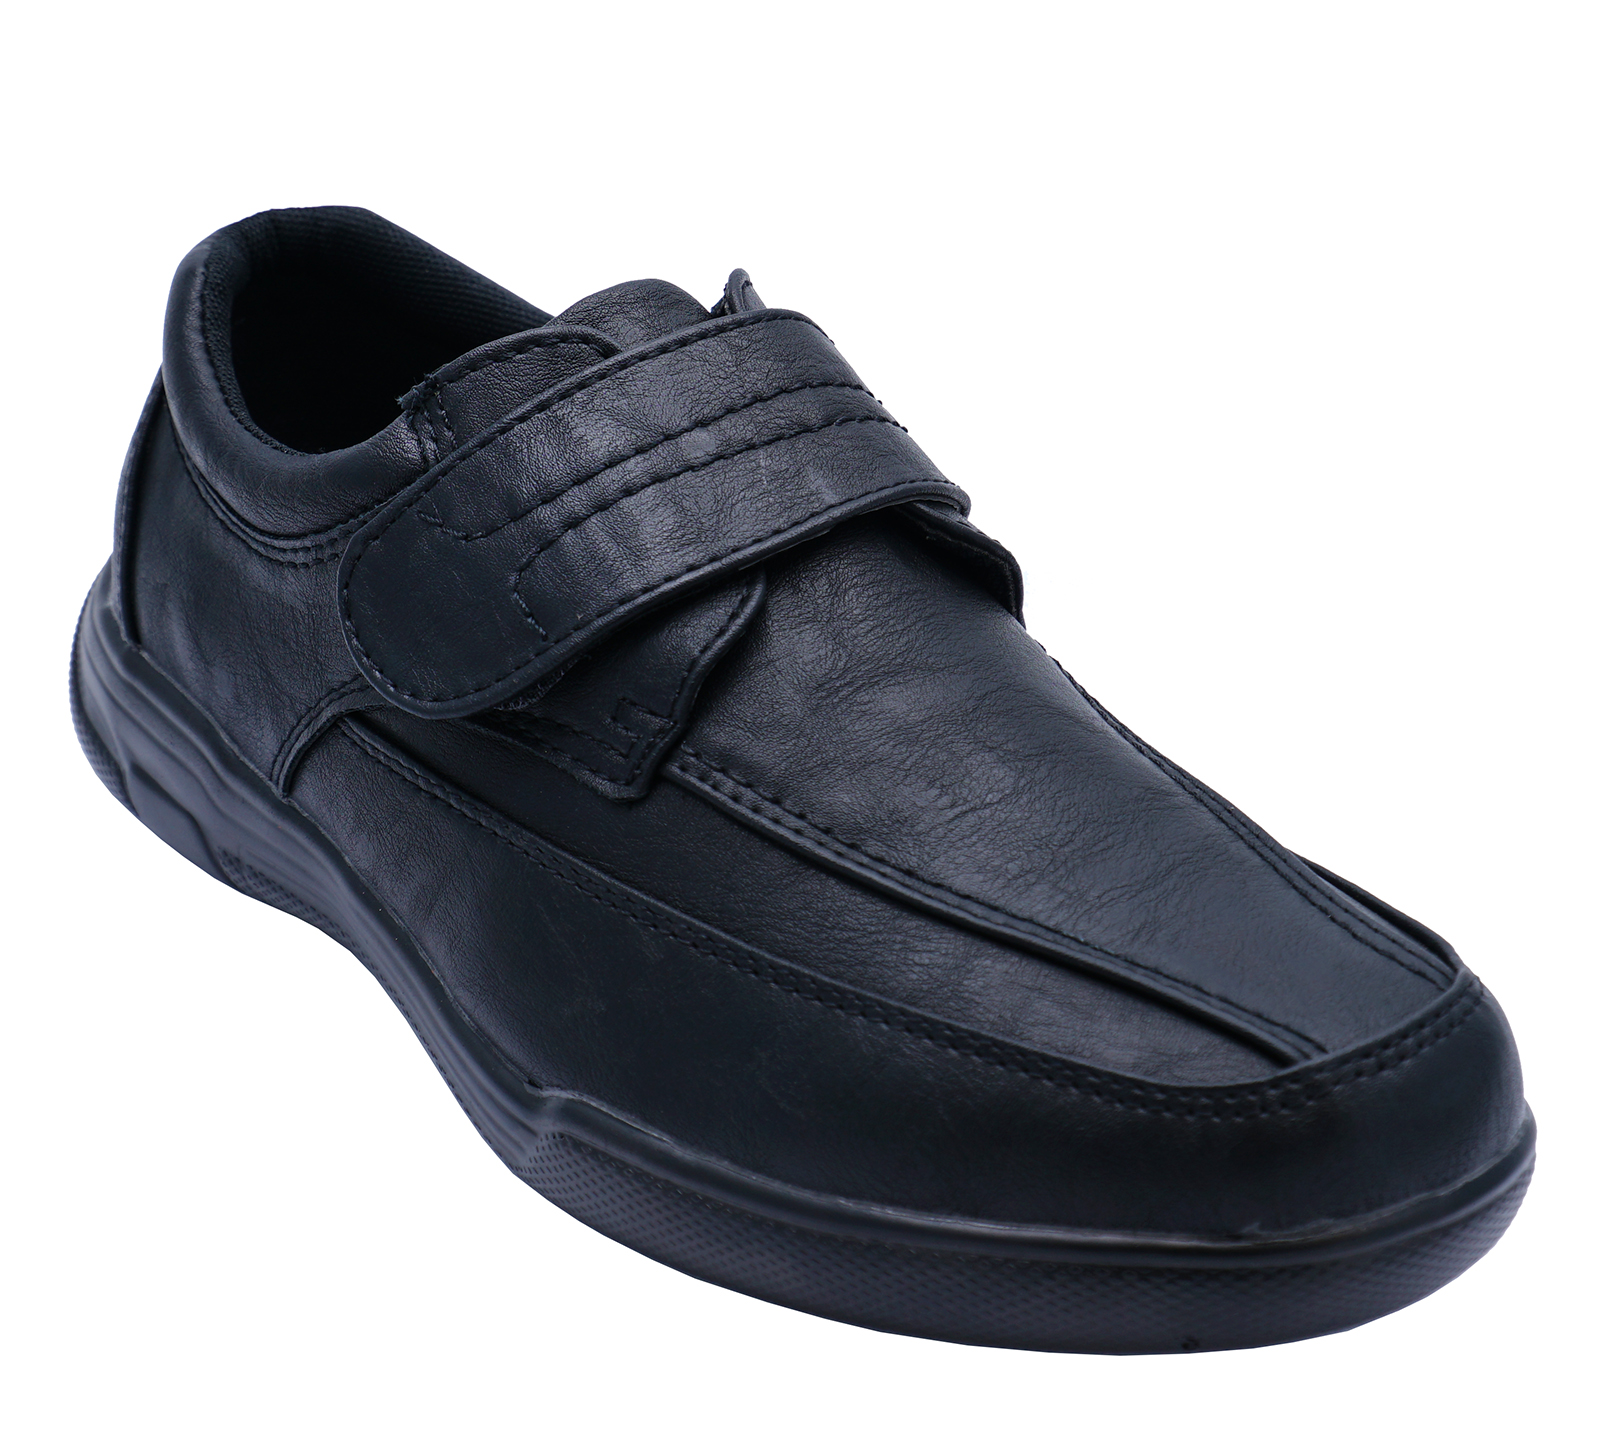 MENS-BLACK-TOUCH-STRAP-COMFY-LIGHTWEIGHT-SMART-CASUAL-LOAFERS-DECK-SHOES-6-12 thumbnail 6